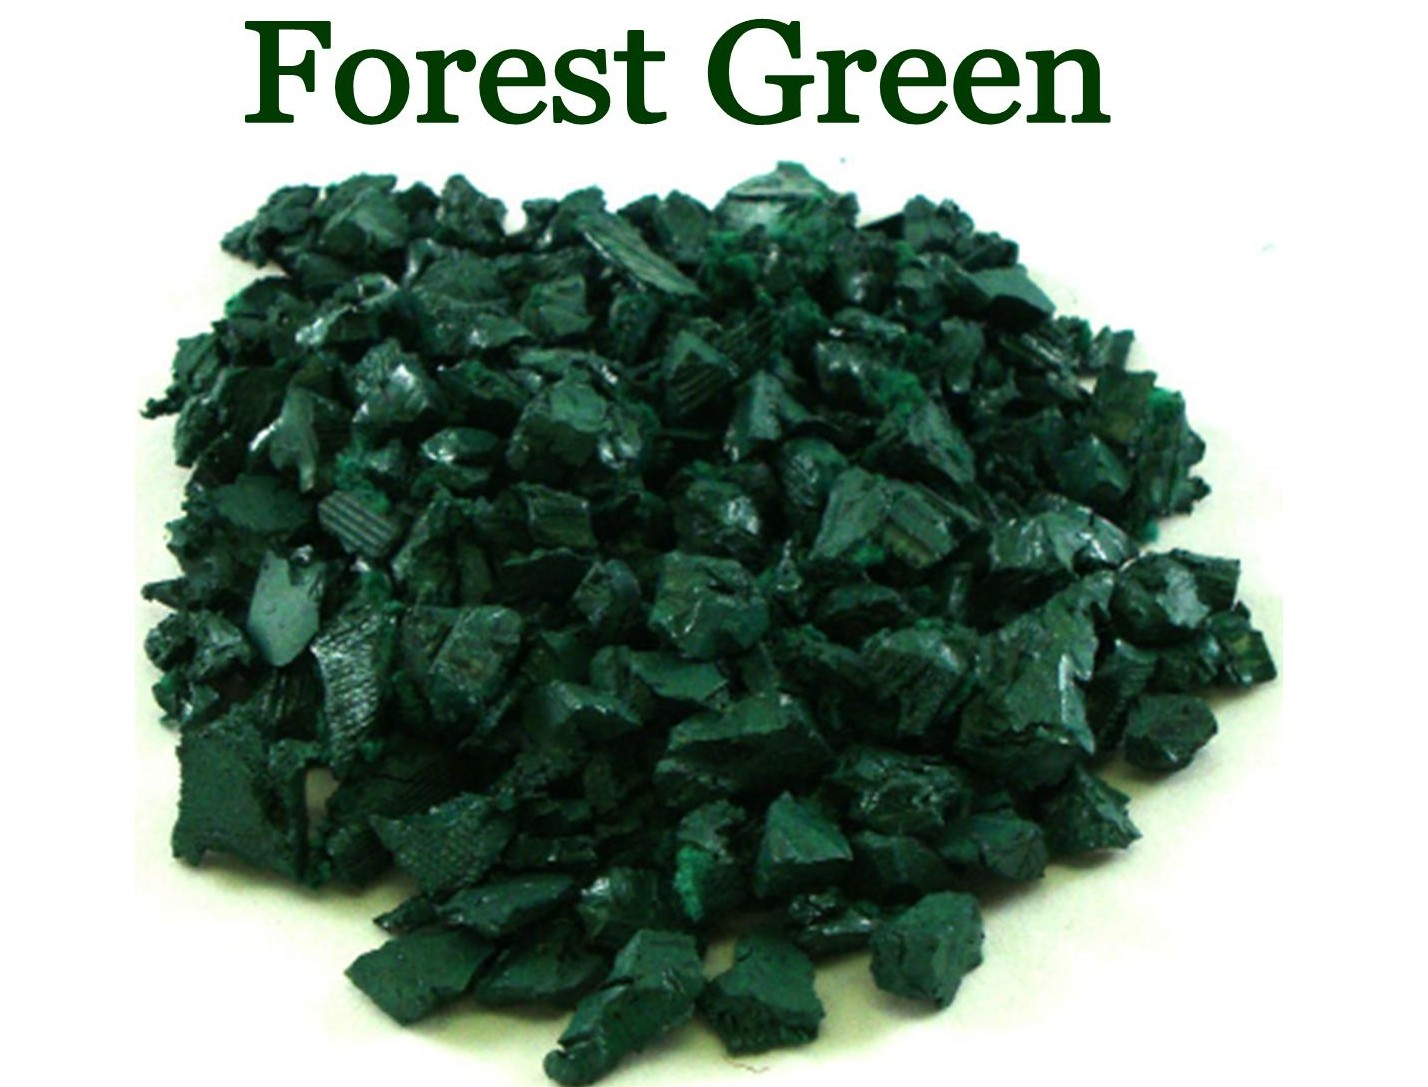 pic of forest green rubber playground mulch